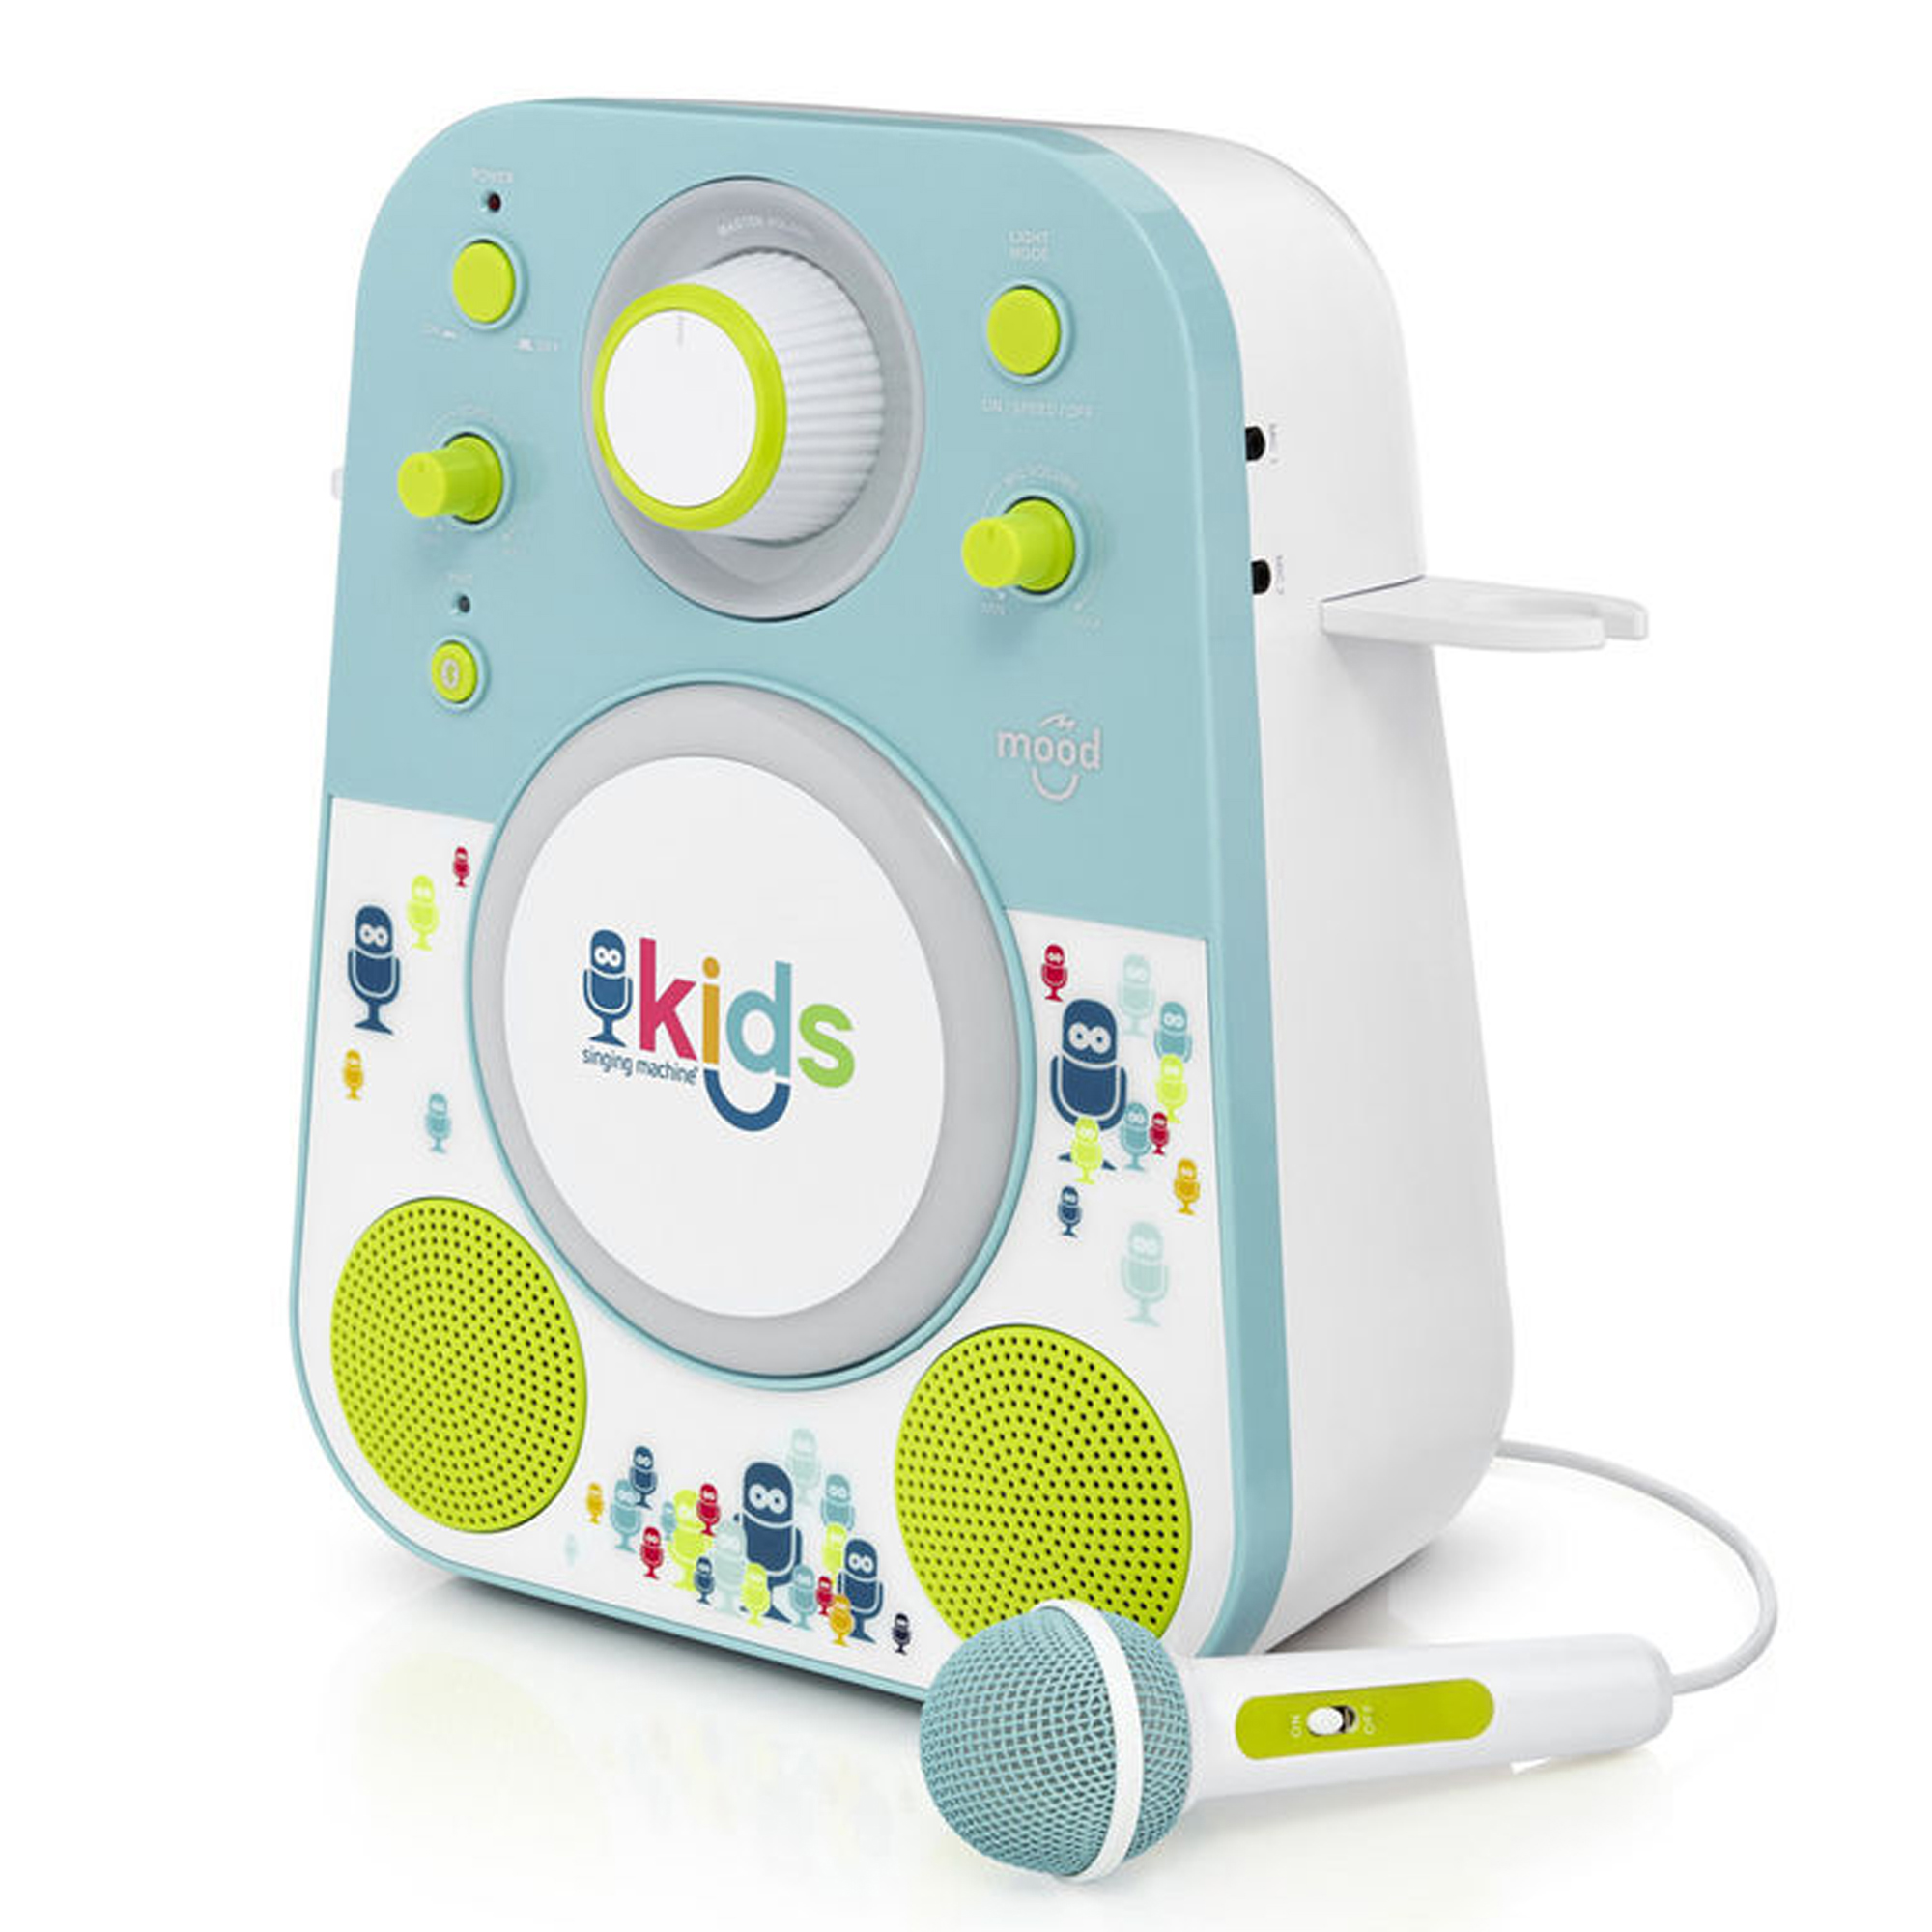 Singing Machine - Kids Mood LED Glowing Bluetooth Sing-Along Speaker with Wired Youth Microphone Doubles as a Night Light, Blue/Green